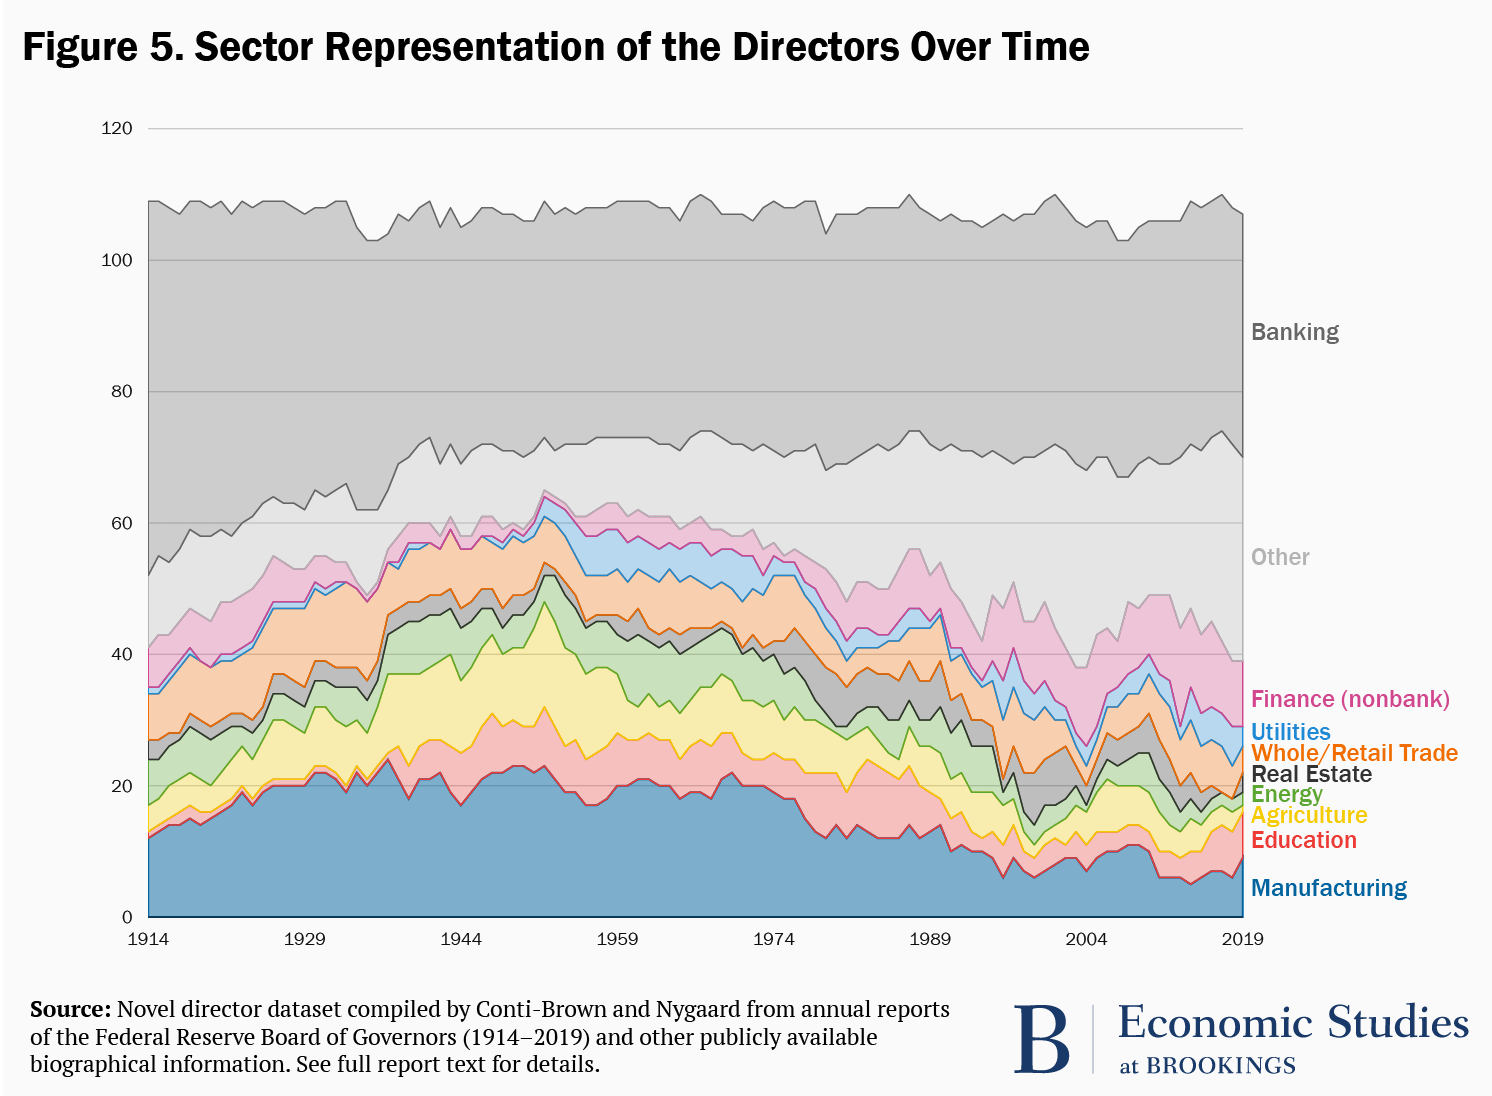 Figure 5. Sector representation of the directors over time